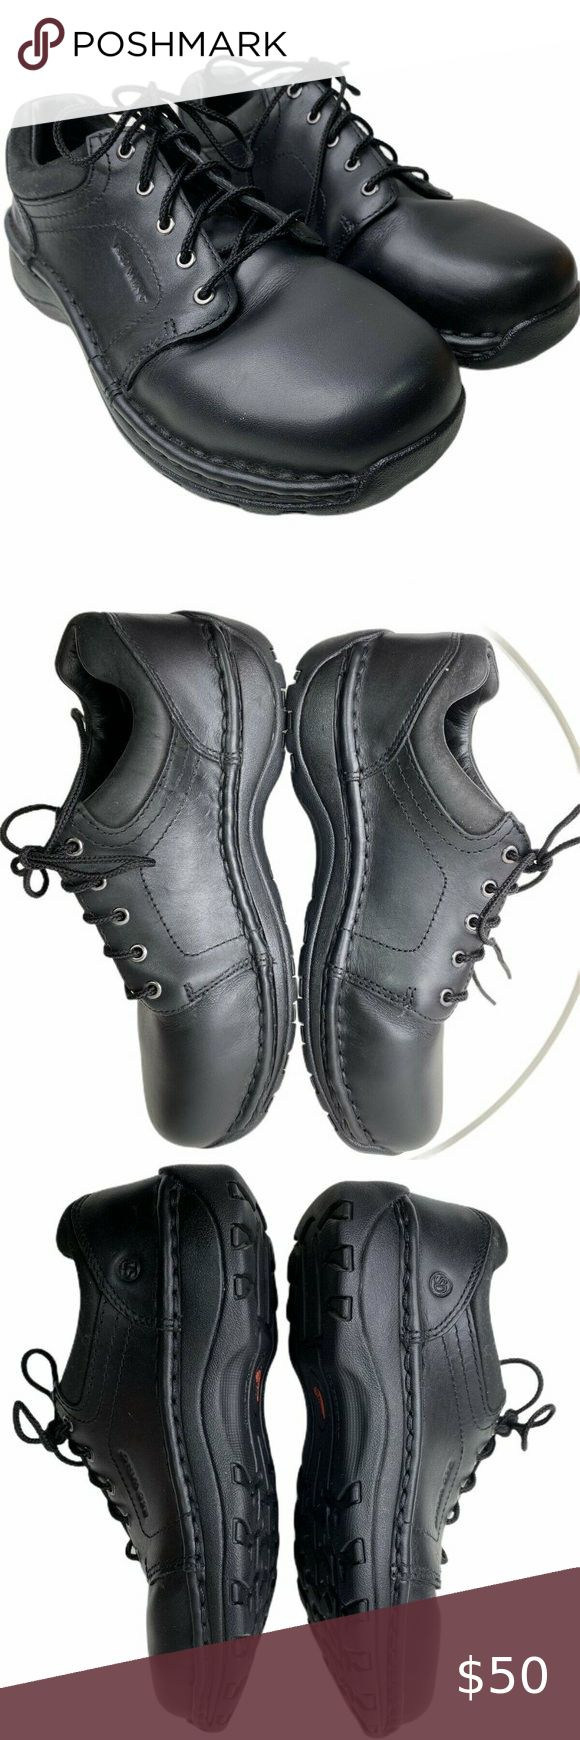 Red Wing Work Oxford Safety Shoes Black 2323 sz 6 in 2020